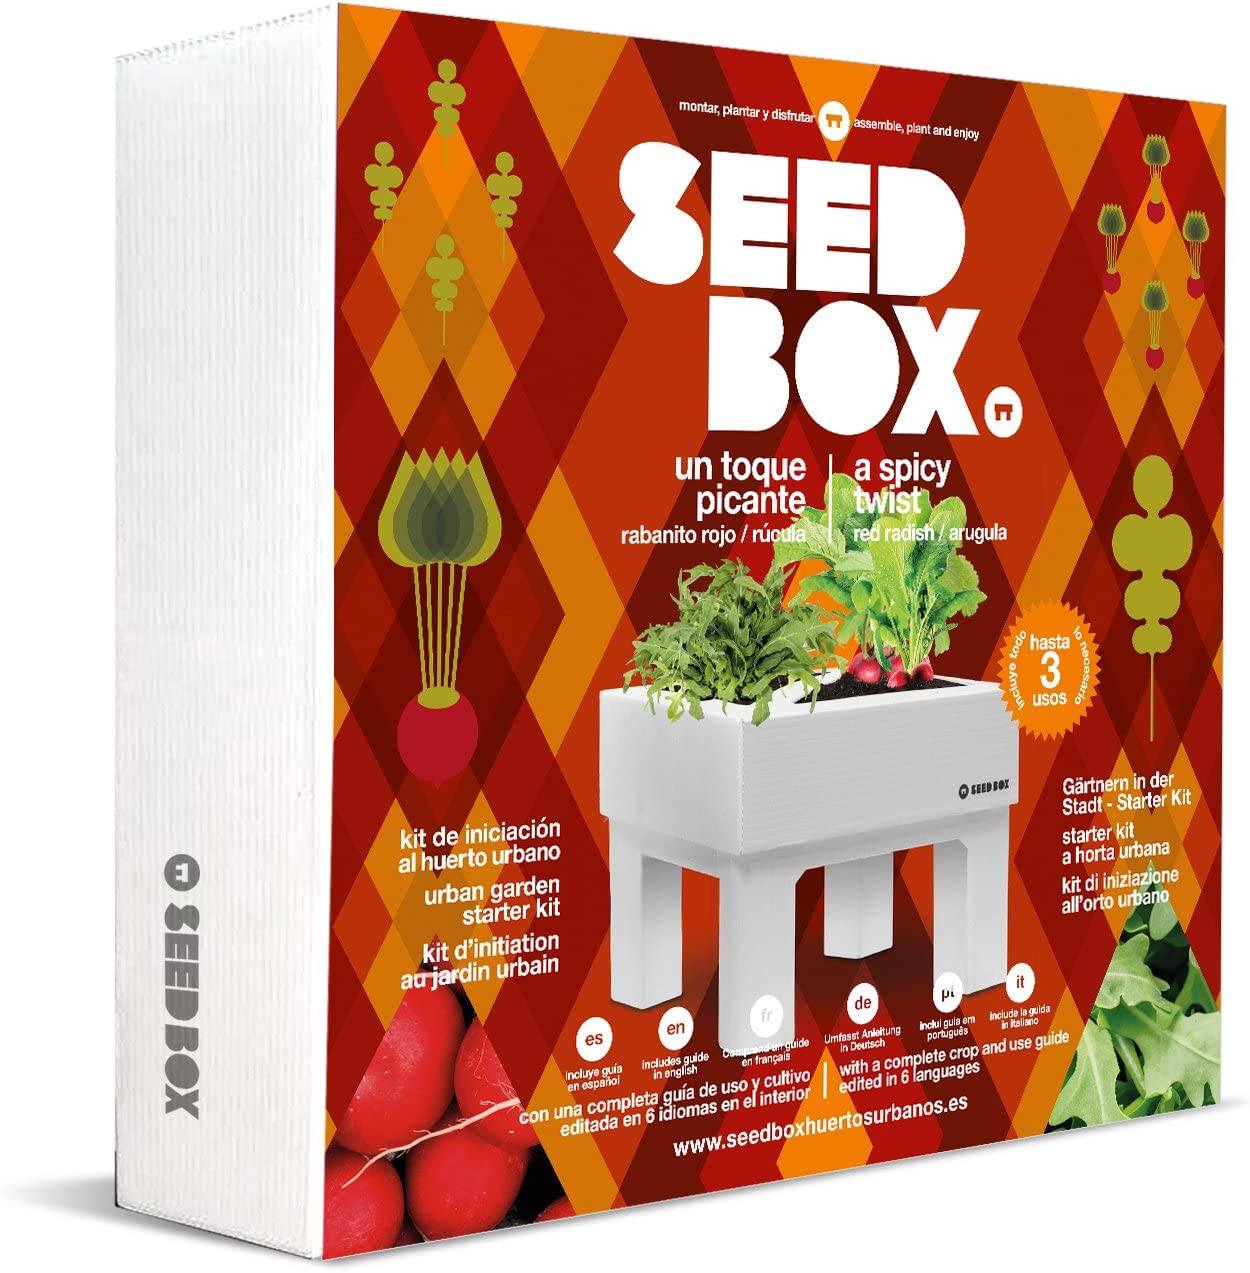 SeedBox Seed Box SBCOTP - Toque Picante